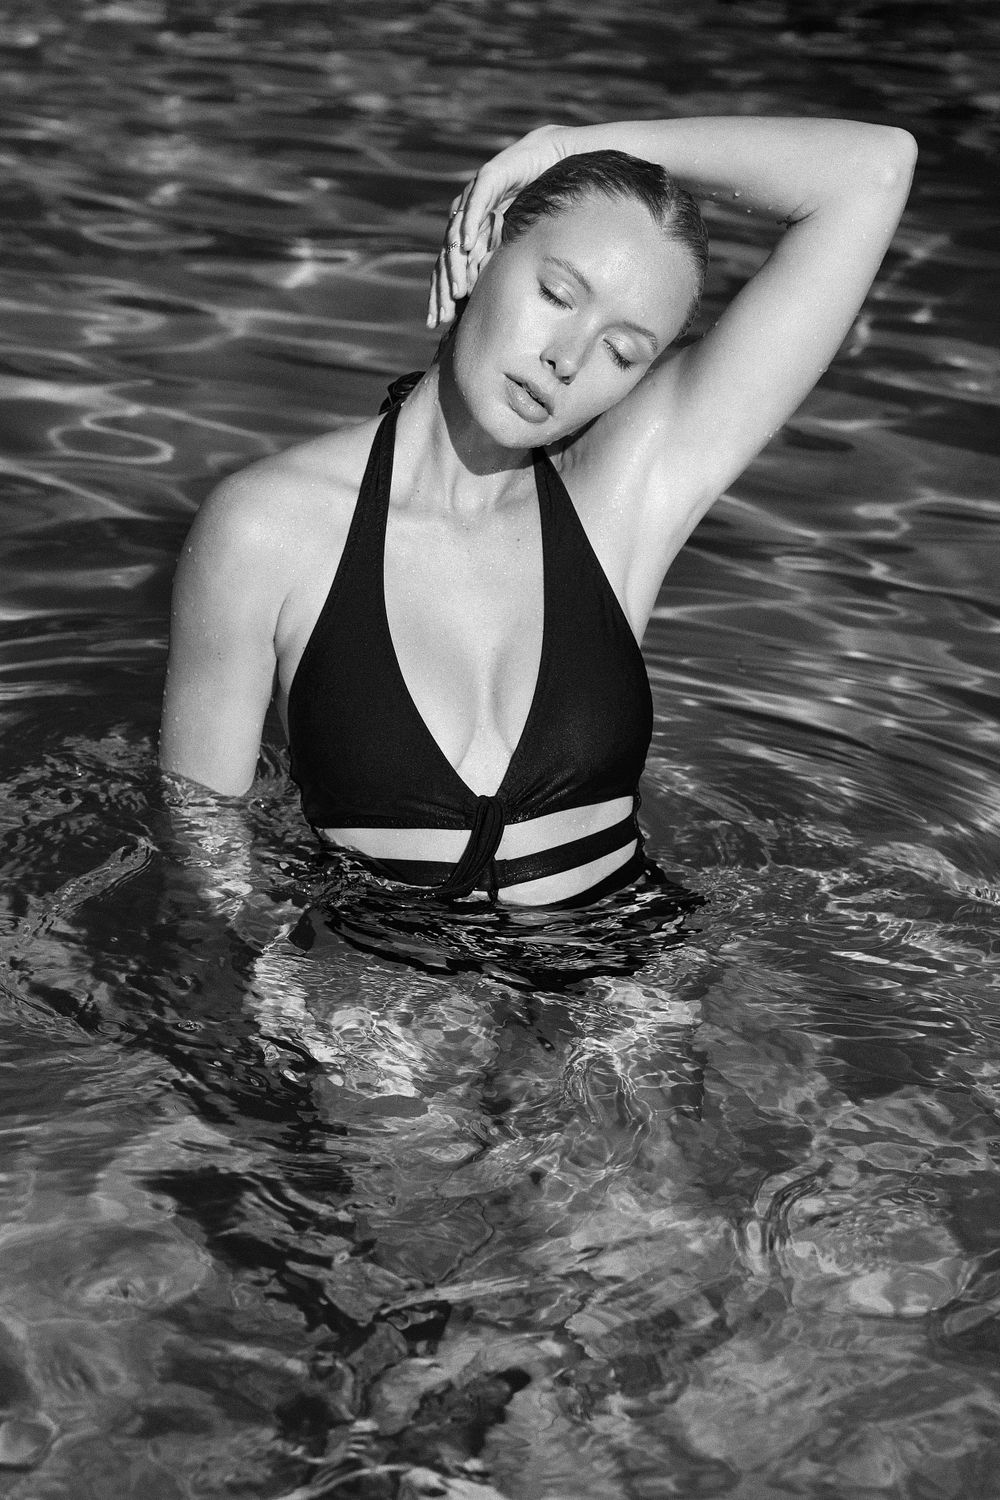 Model Carley Johnston standing in swimming pool one piece swimsuit black and white south beach miami timeless